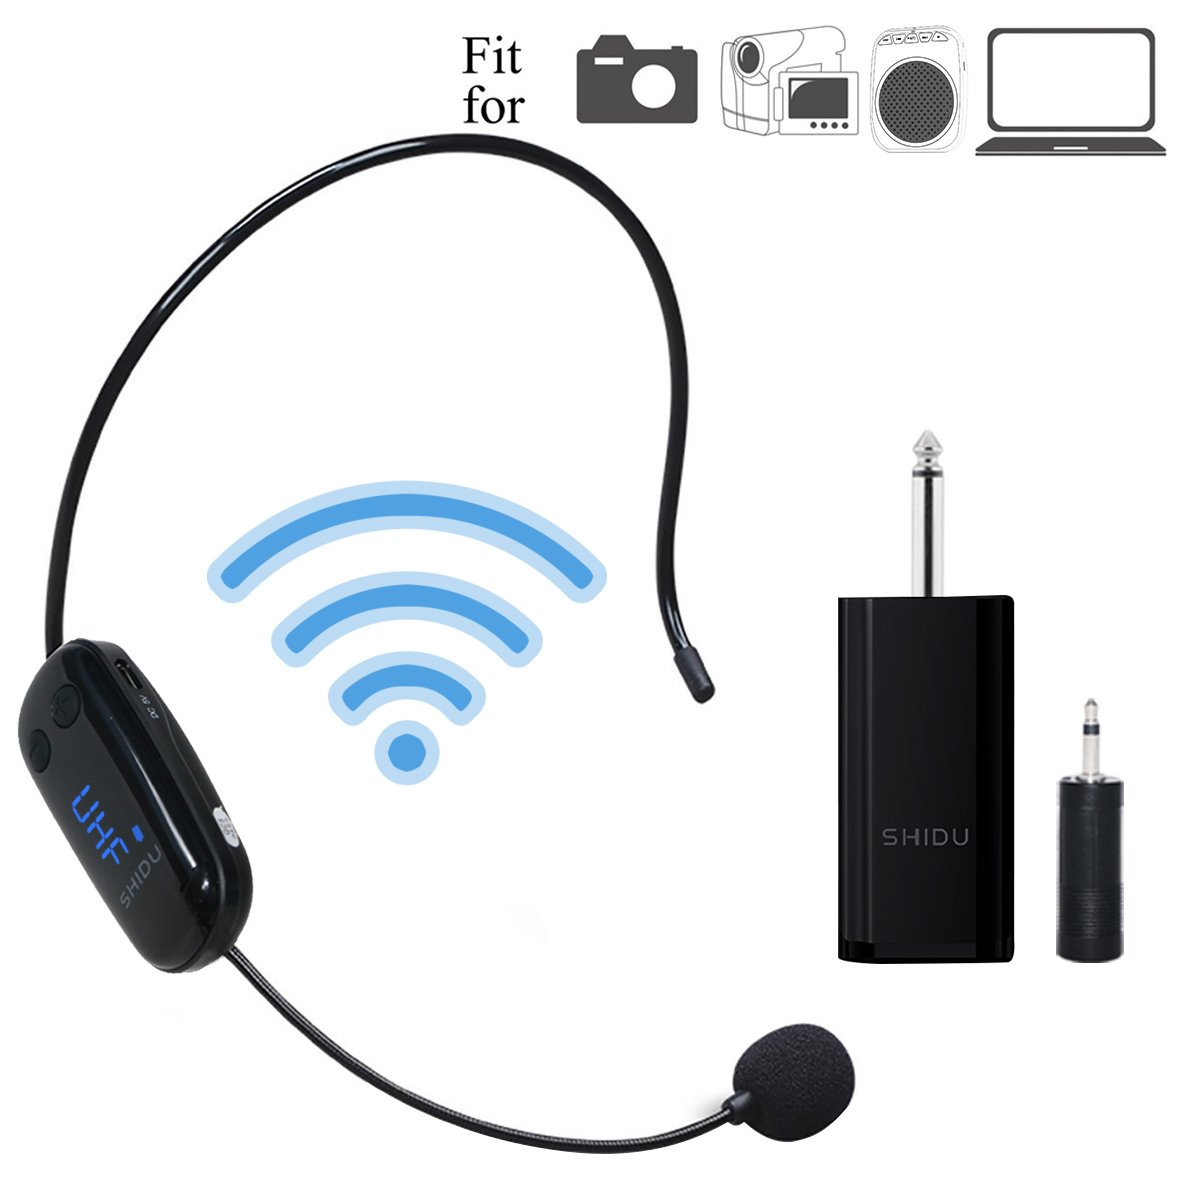 Wireless Microphone Headset Bluetooth, 115ft Stable Wireless Transmission Hand-free, Headworn Mic for Handheld Vocal Mic 2 in 1 Rechargeable for DSLR Camera Recording, Voice amplifier, Pa System ect by ResponseBridge